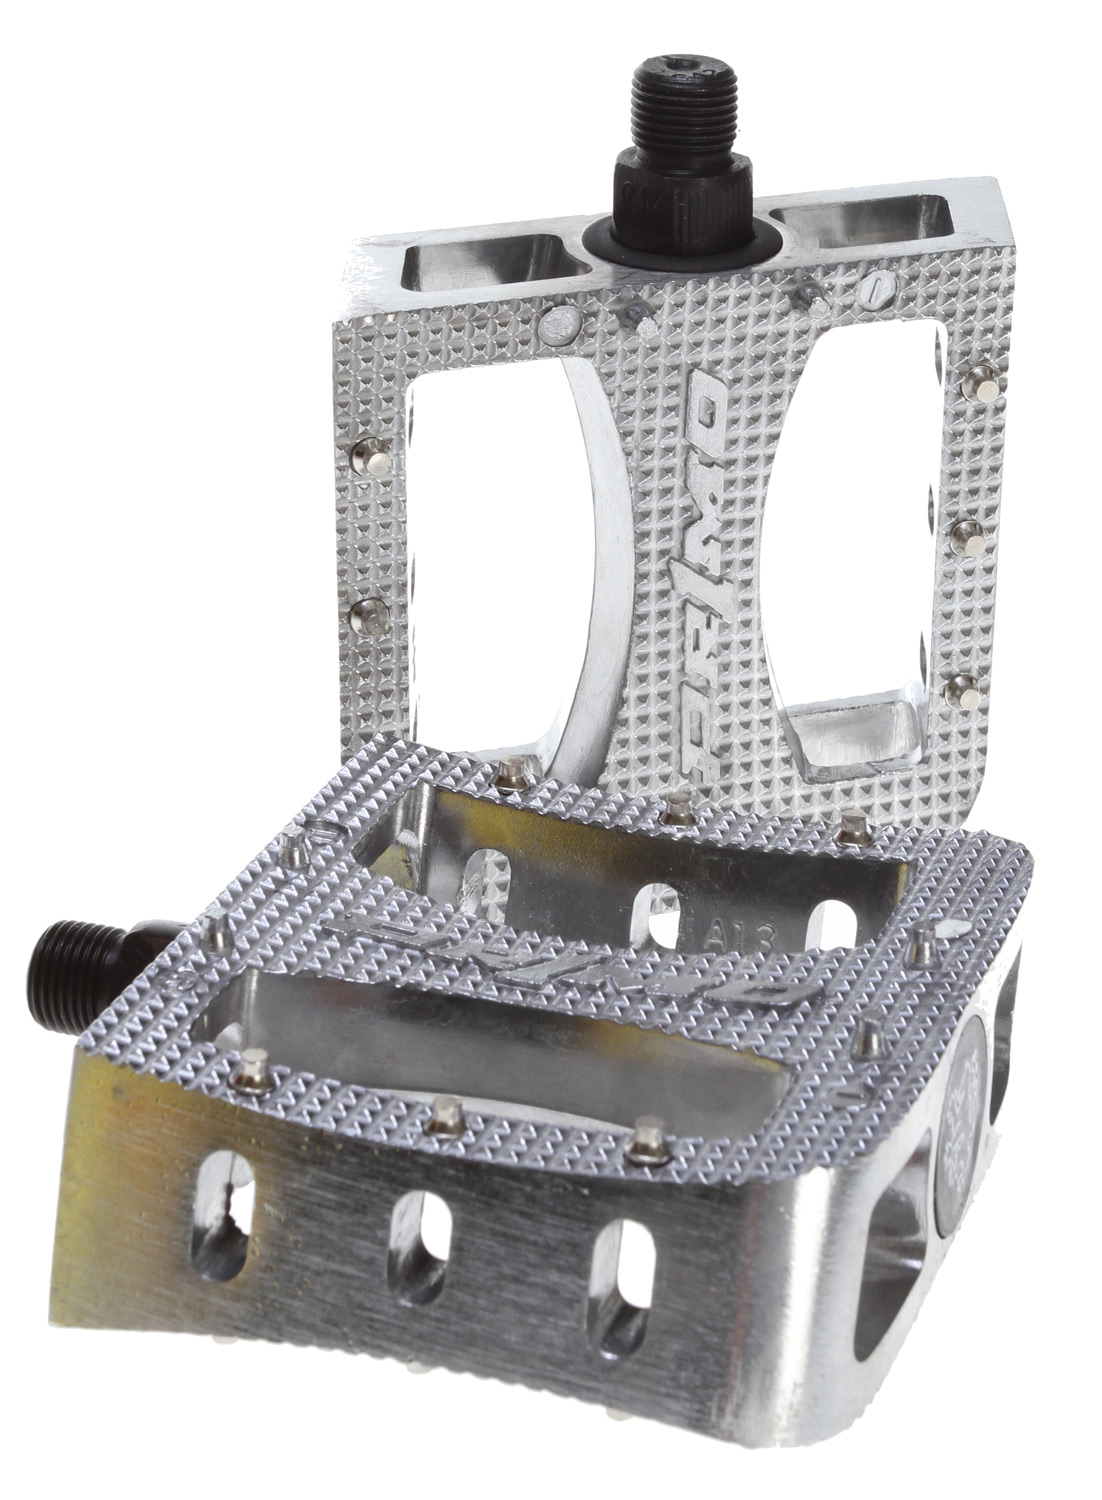 "BMX Primo Super Tenderizer Aluminum BMX Pedals with removable/replaceable pins.Key Features of the Primo Super Tenderizer Pedals Polished 9/16"": Pedal Type: Platform Intended Use: BMX Pedal Spindle: 9/16"" Spindle Material: Chromoly Material: Aluminum Weight: 800.0 g Wght/Dims: 1.91 lbs. 8.5 x 5.5 x 1.5 - $21.00"